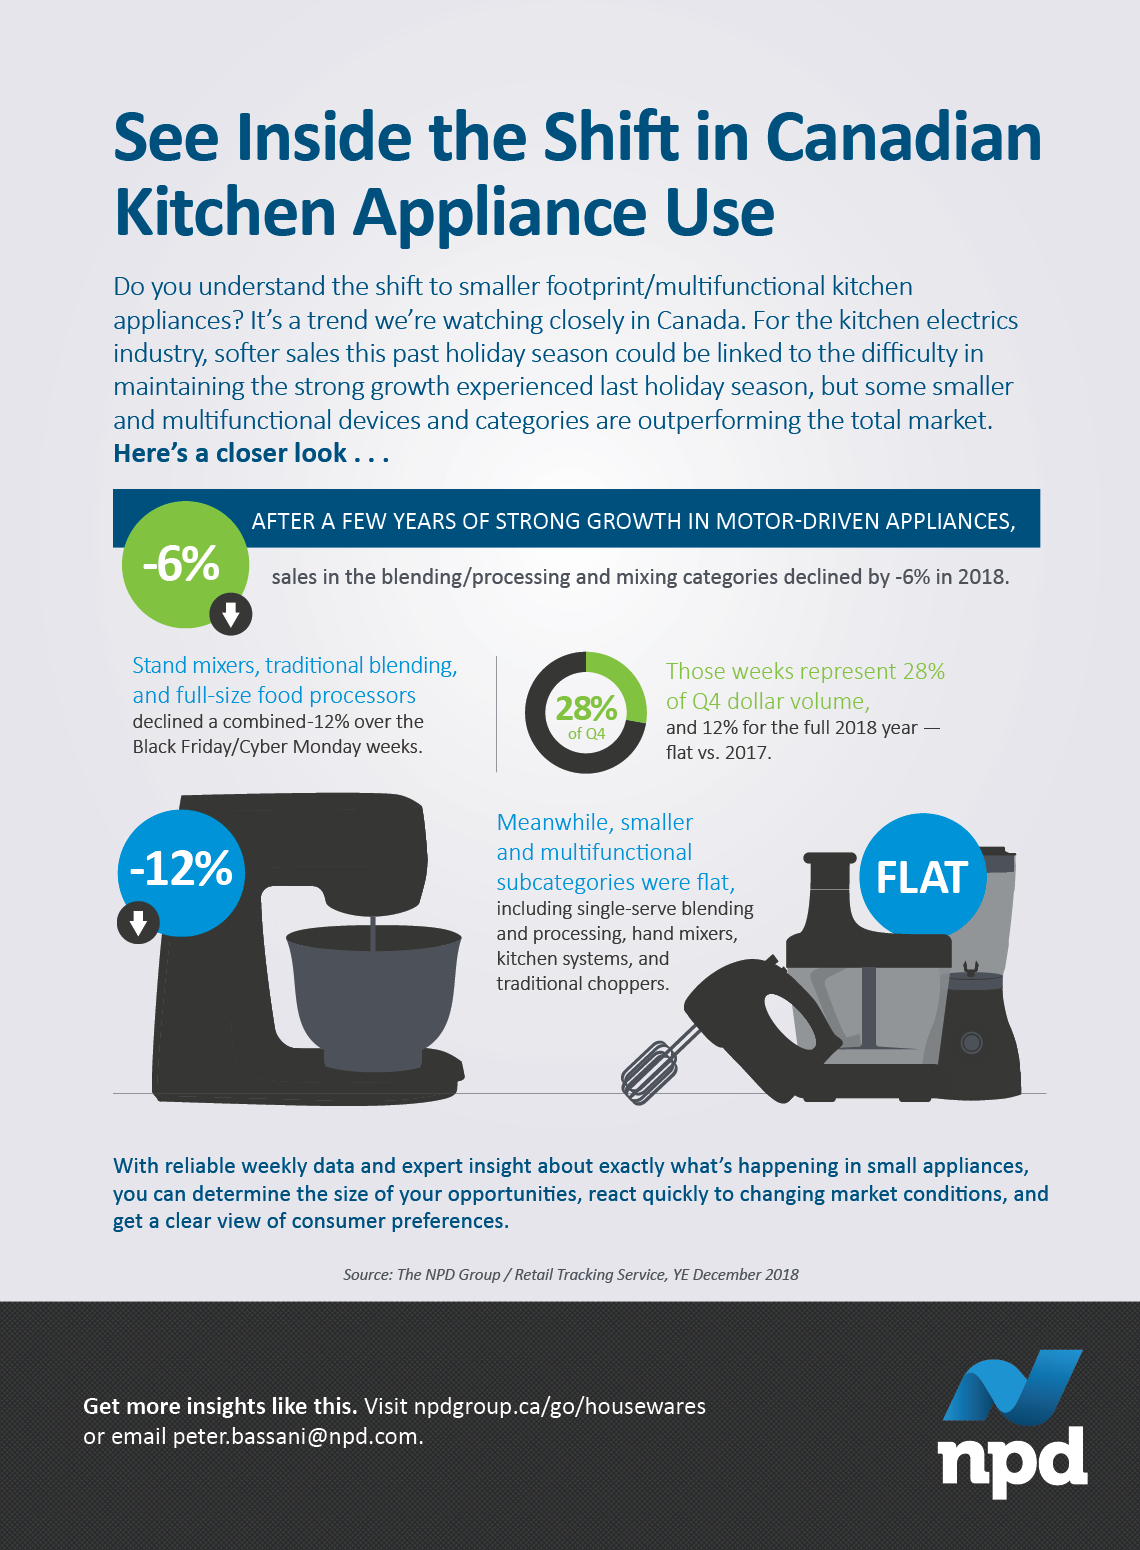 Do you understand the shift to smaller footprint/multifunctional kitchen appliances? It's a trend we're watching closely in Canada.